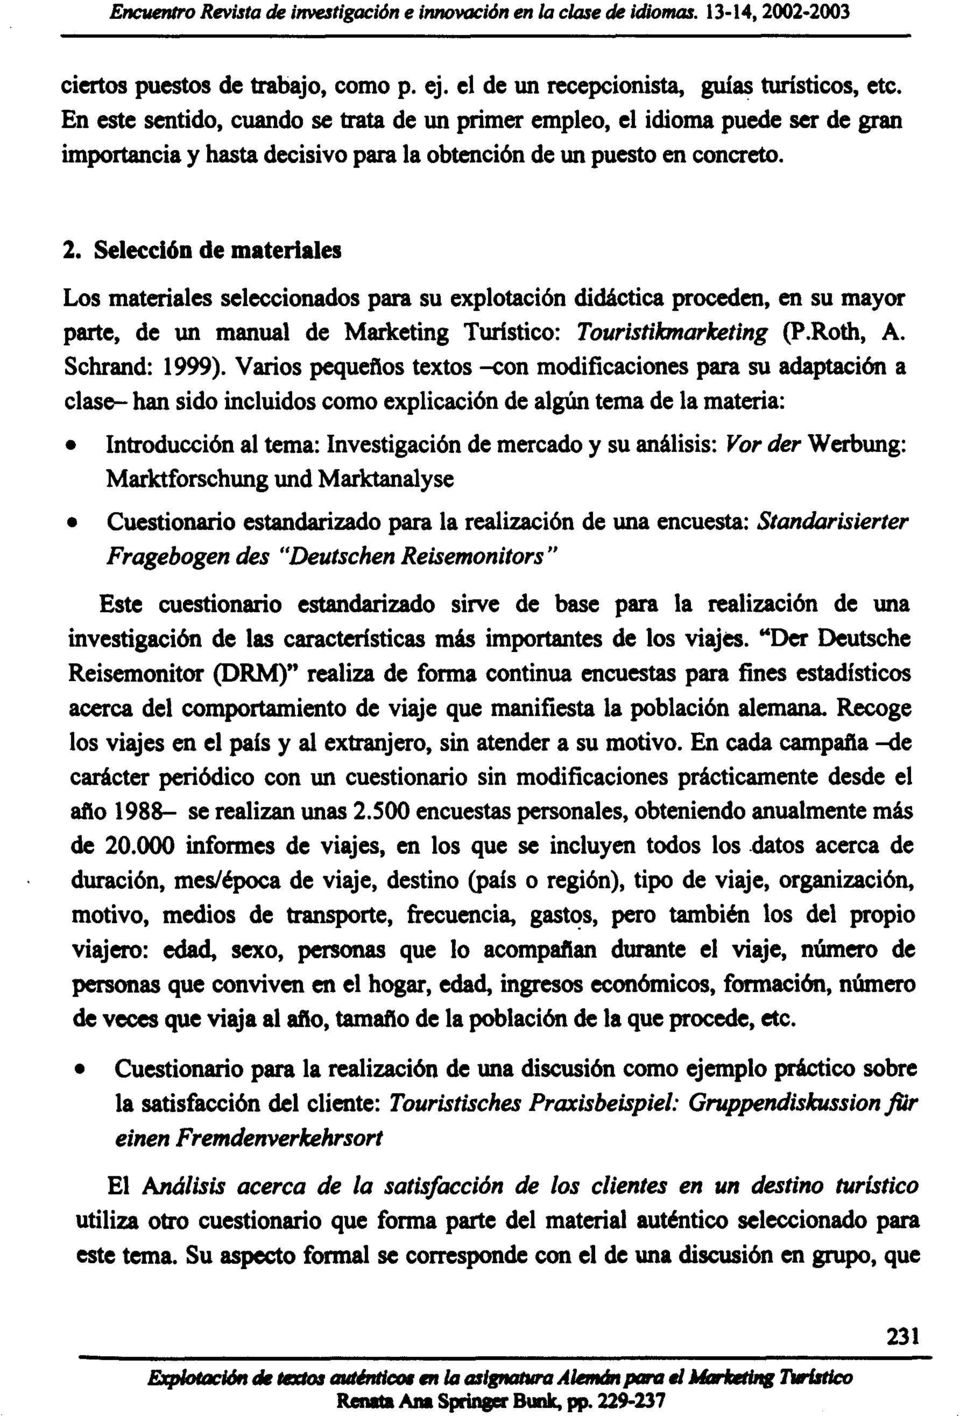 Selección de materiales Los materiales seleccionados para su explotación didáctica proceden, en su mayor parte, de \m manual de Marketing Turístico: Touristikmarketing (P.Roth, A. Schrand: 1999).